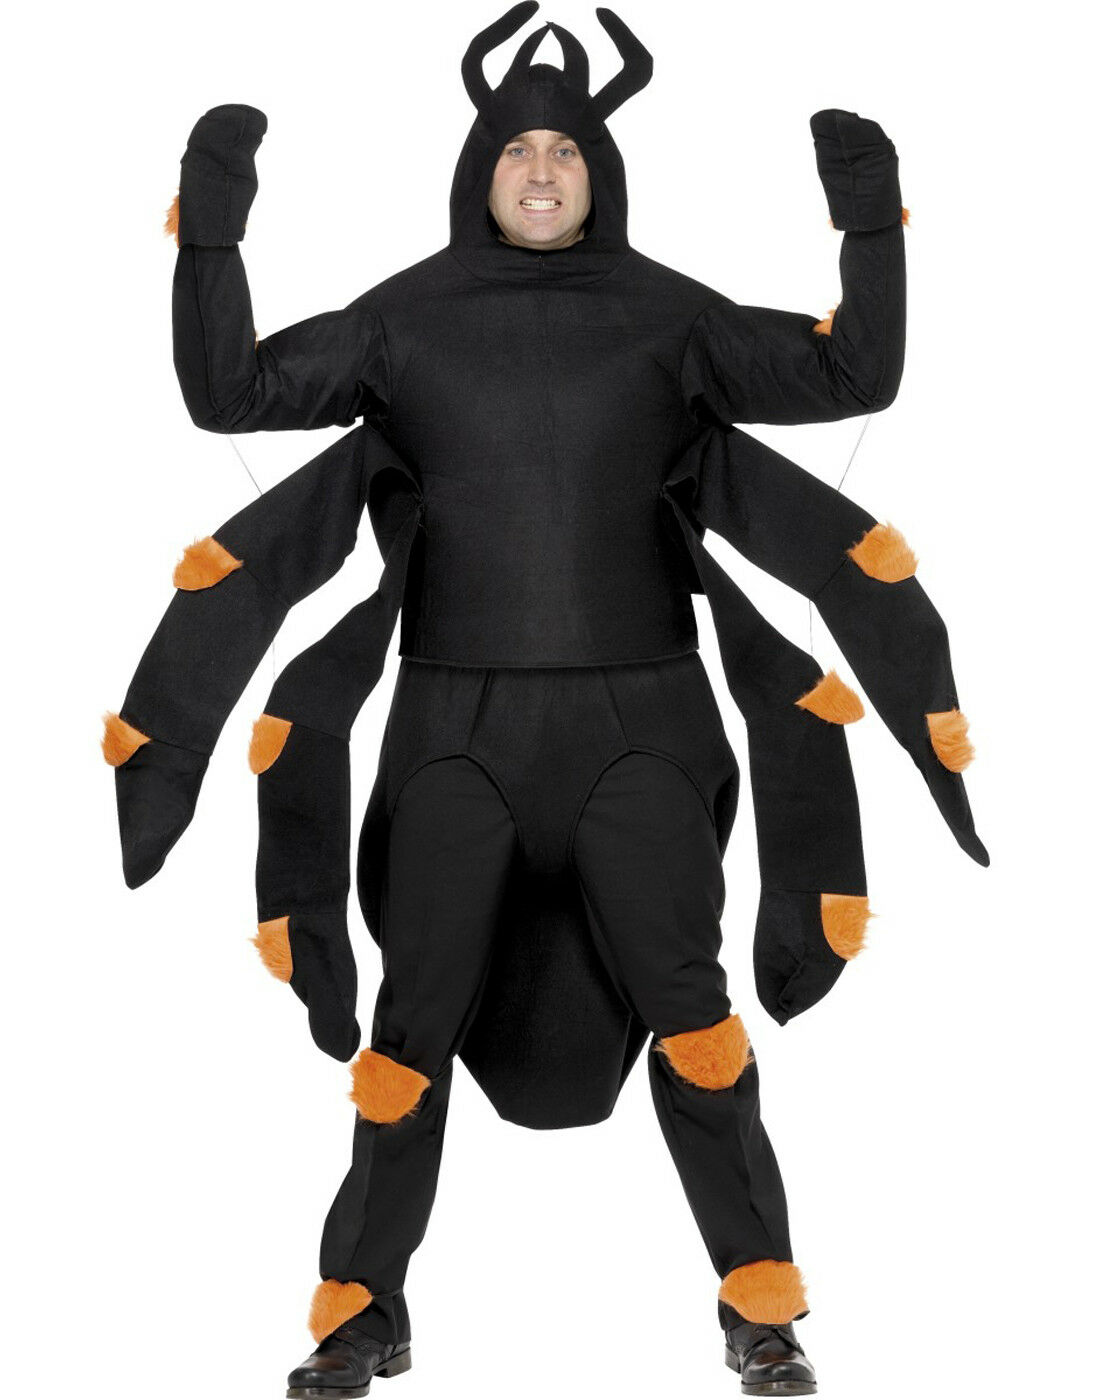 item 2 Scary Creepy Giant Black Spider Costume Insect Unisex Halloween Costumes Adult -Scary Creepy Giant Black Spider Costume Insect Unisex Halloween ...  sc 1 st  eBay & Scary Creepy Giant Black Spider Costume Insect Unisex Halloween ...